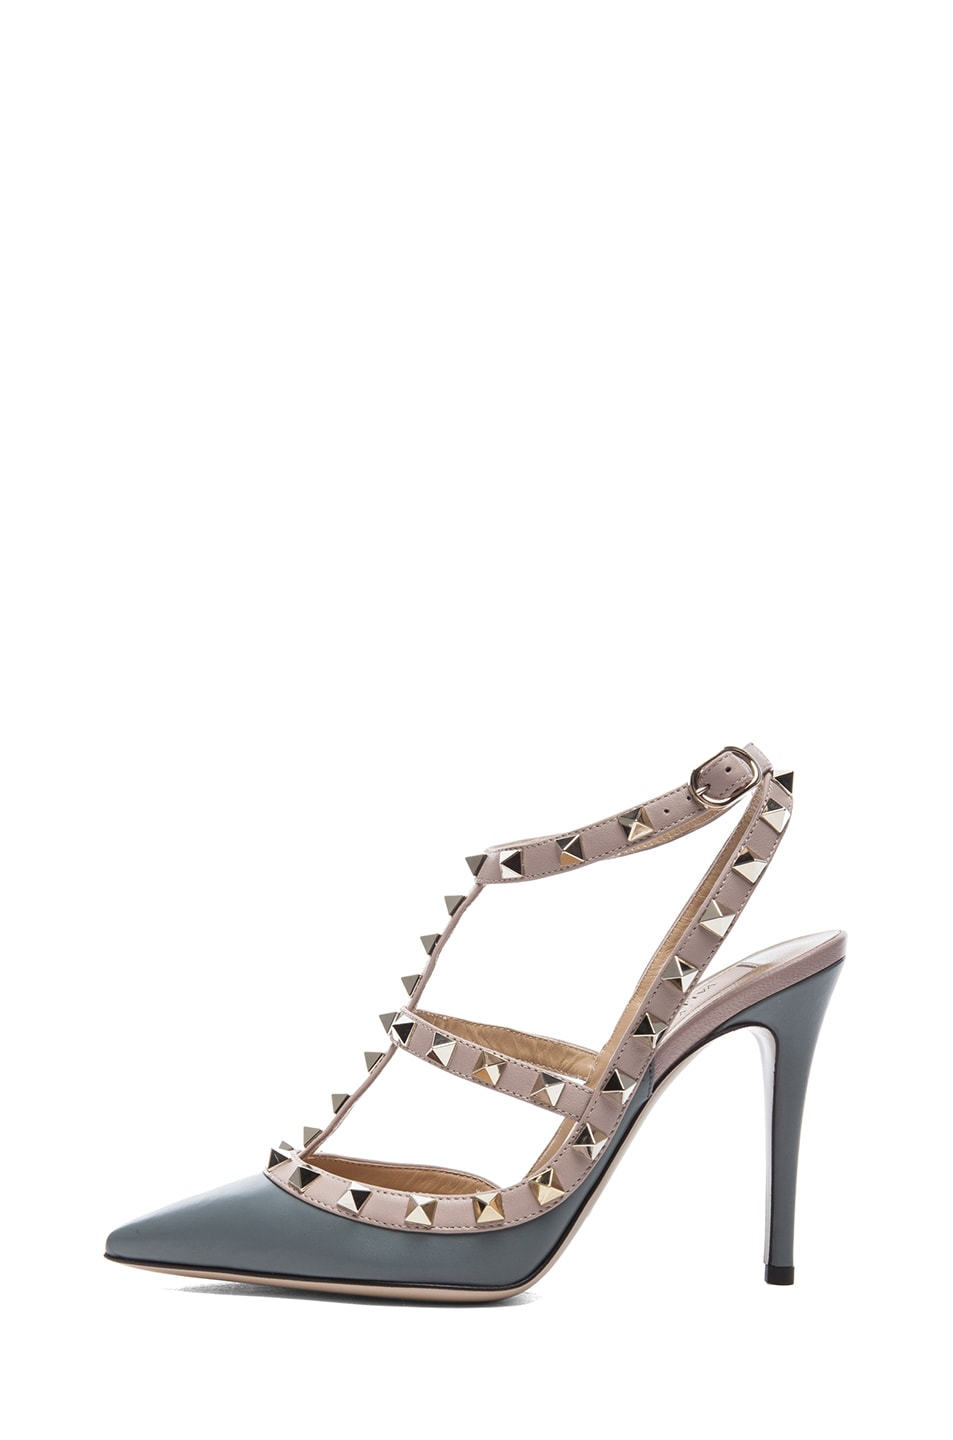 Image 1 of Valentino Rockstud Leather Slingbacks T.100 in Stone